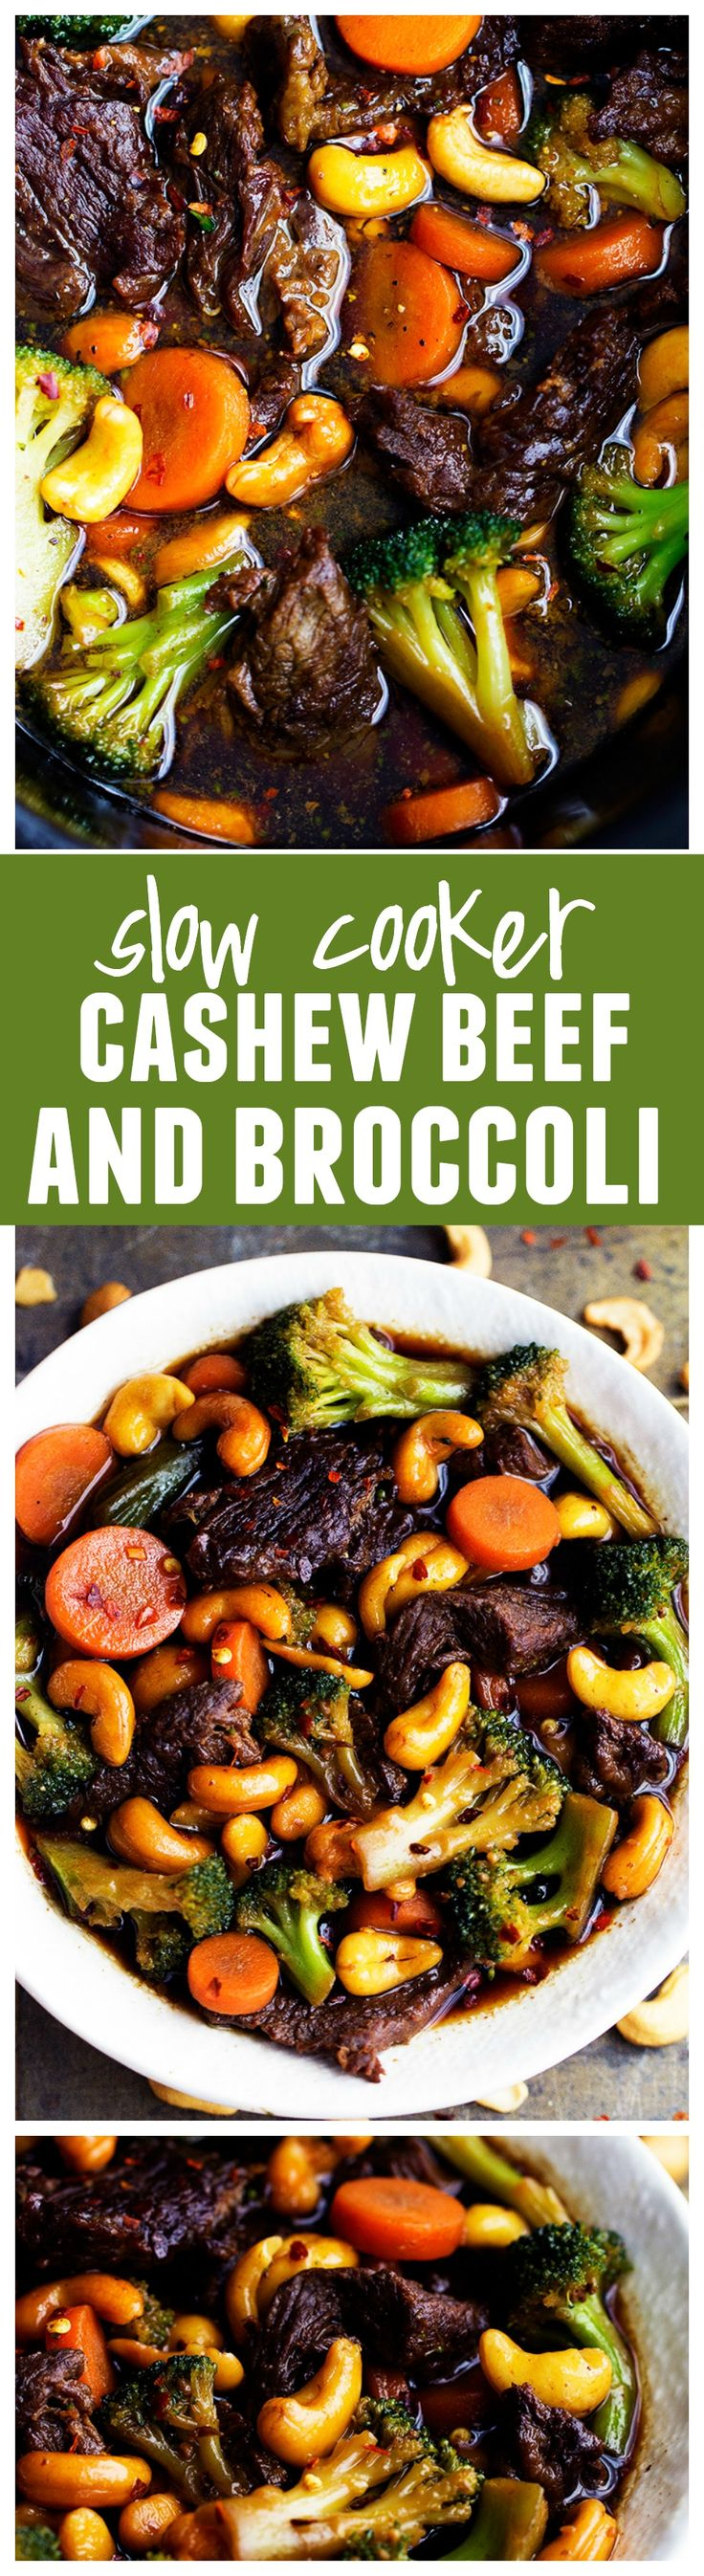 Delicious melt in your mouth beef that cooks right in your slow cooker with veggies and cashews hidden throughout. This will be the BEST thing that you make!